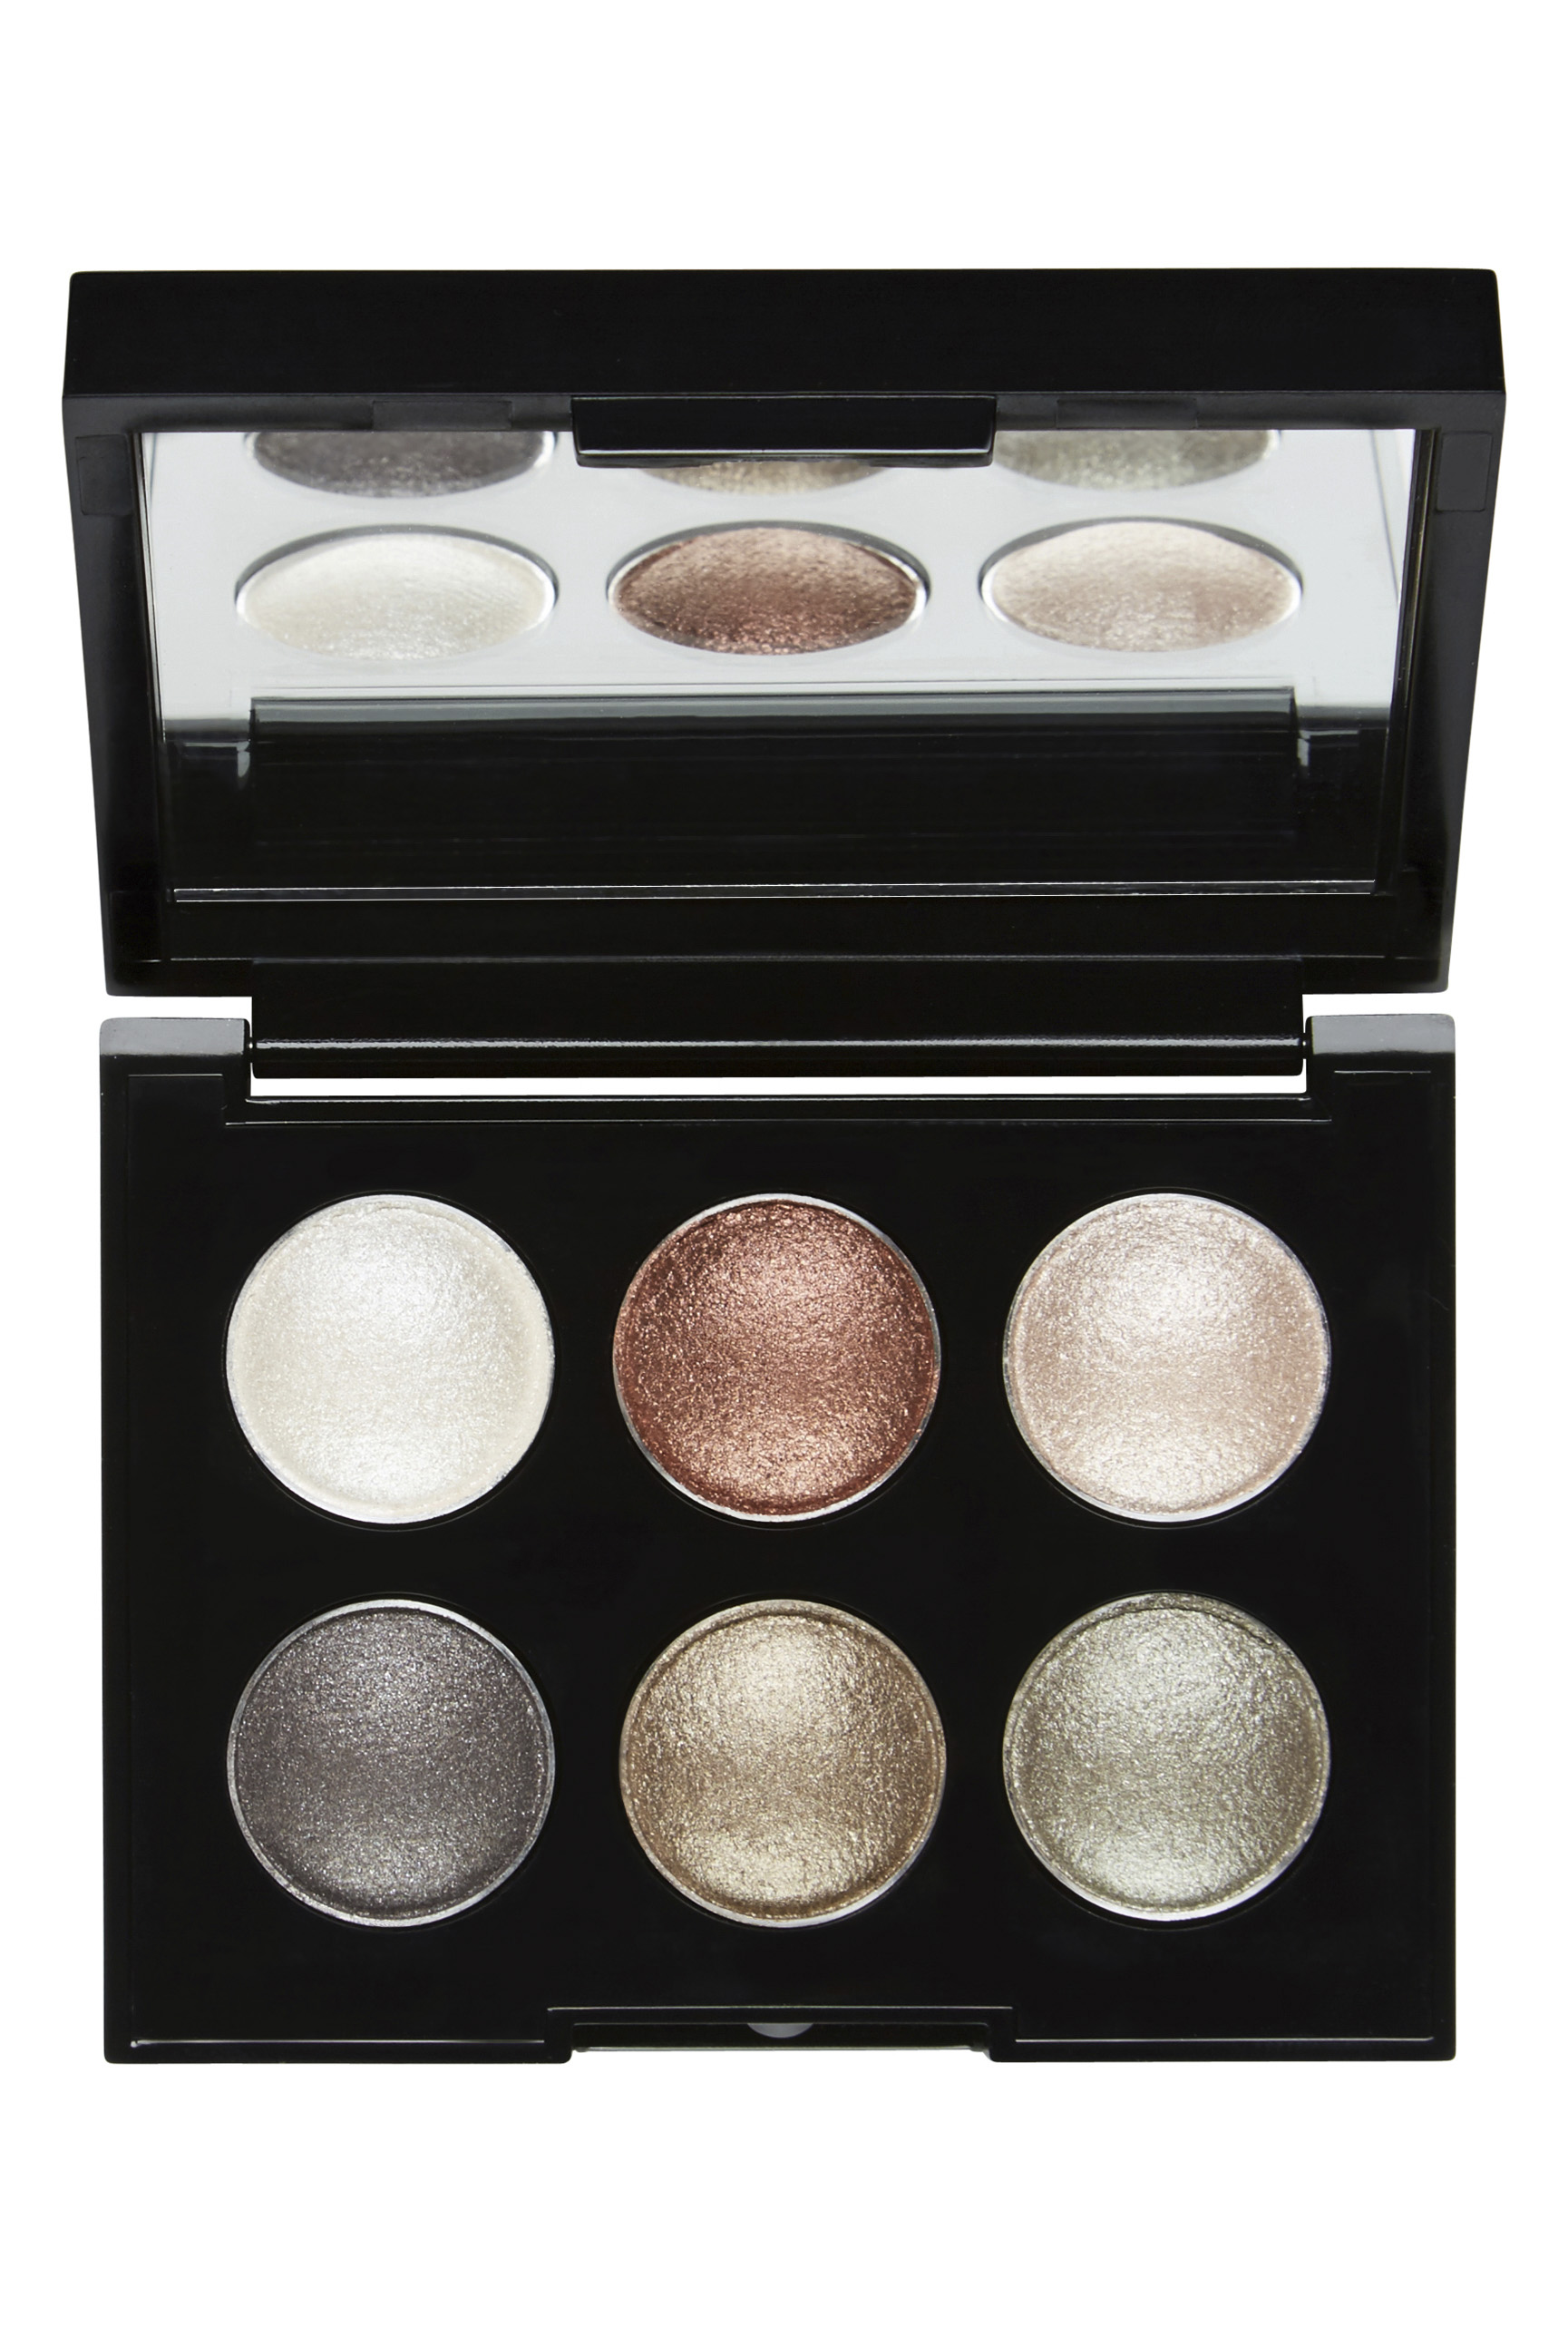 60202599_witchery-beauty-baked-eyeshadow-palette-in-night-shadow-rrp29-90